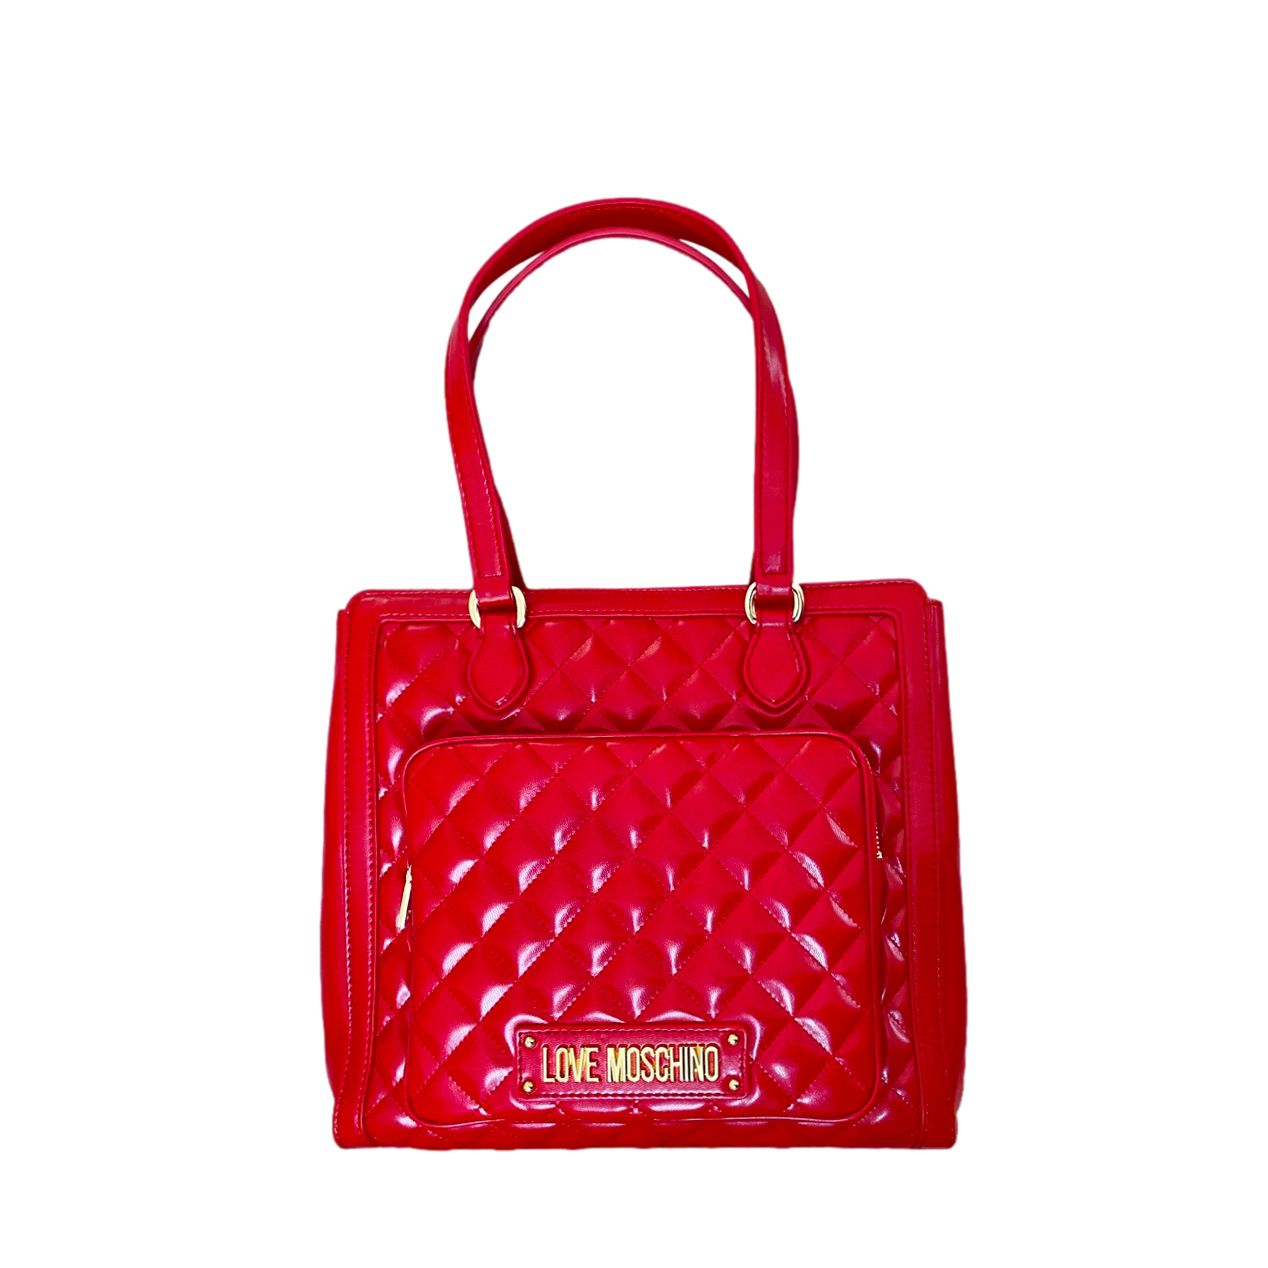 Love Moschino Cherry Red Quilted Patent Tote